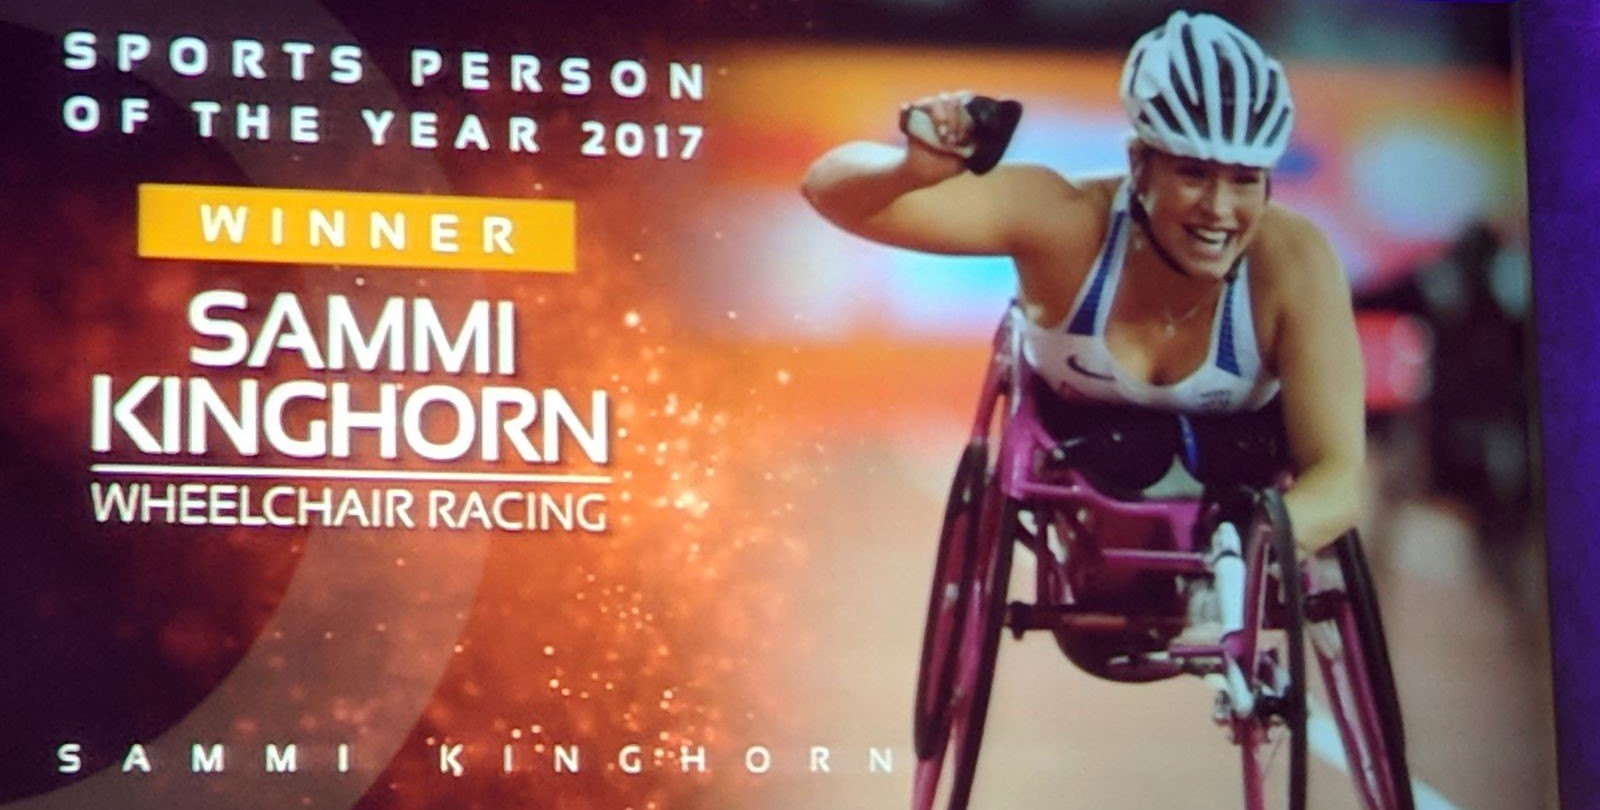 Success at Glasgow Sports Awards for Sammi Kinghorn and Ian Mirfin MBE